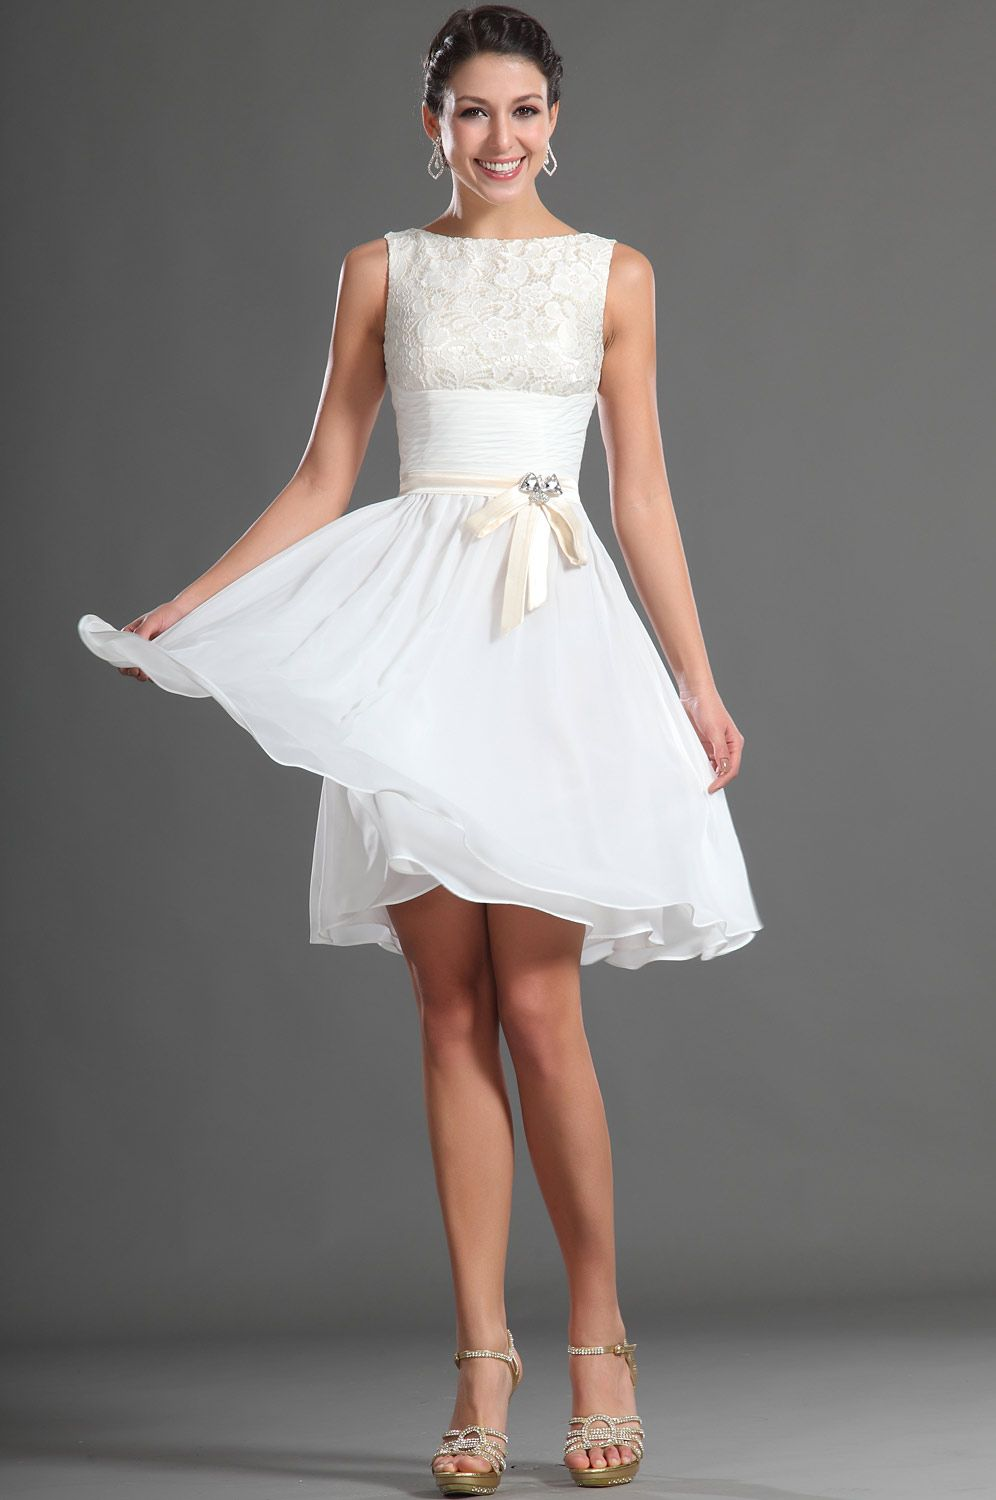 Cheap casual wedding dresses  eDressit Lovely White Lace Cocktail Dress Party Dress